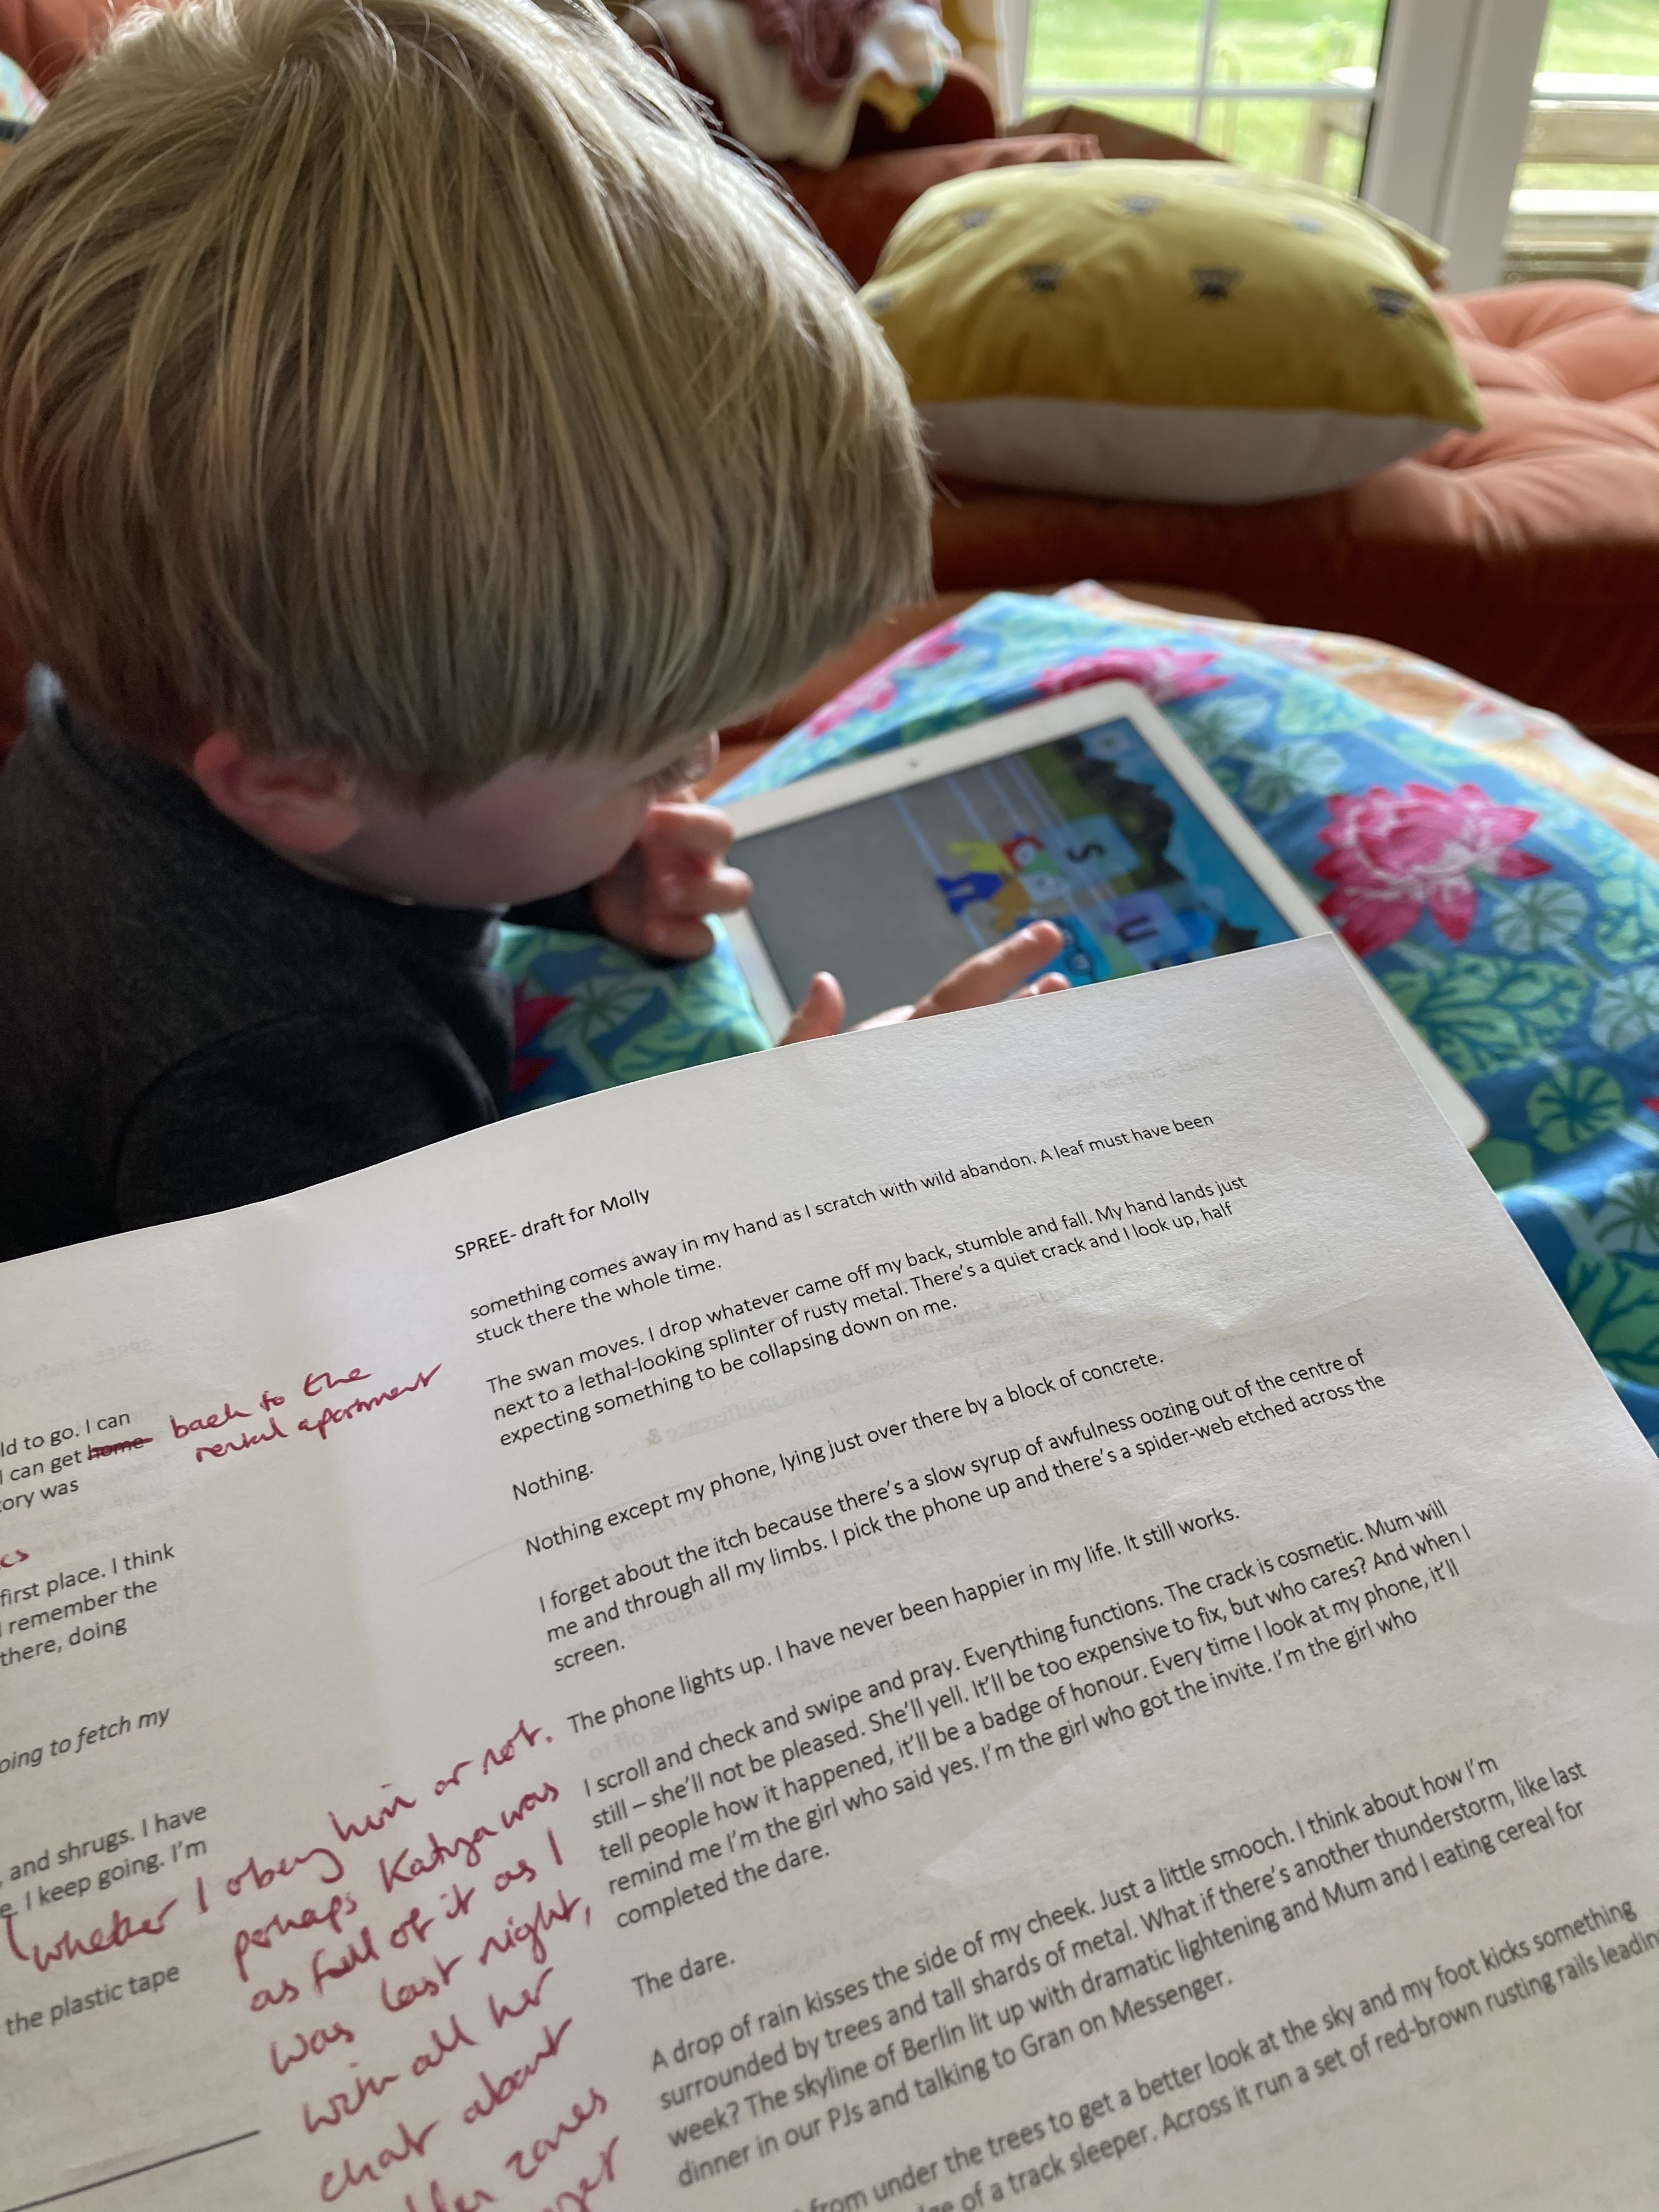 Printed story draft with red pen edits on it in the foreground, my son (blonde white toddler in dark grey top) playing on an iPad in the background